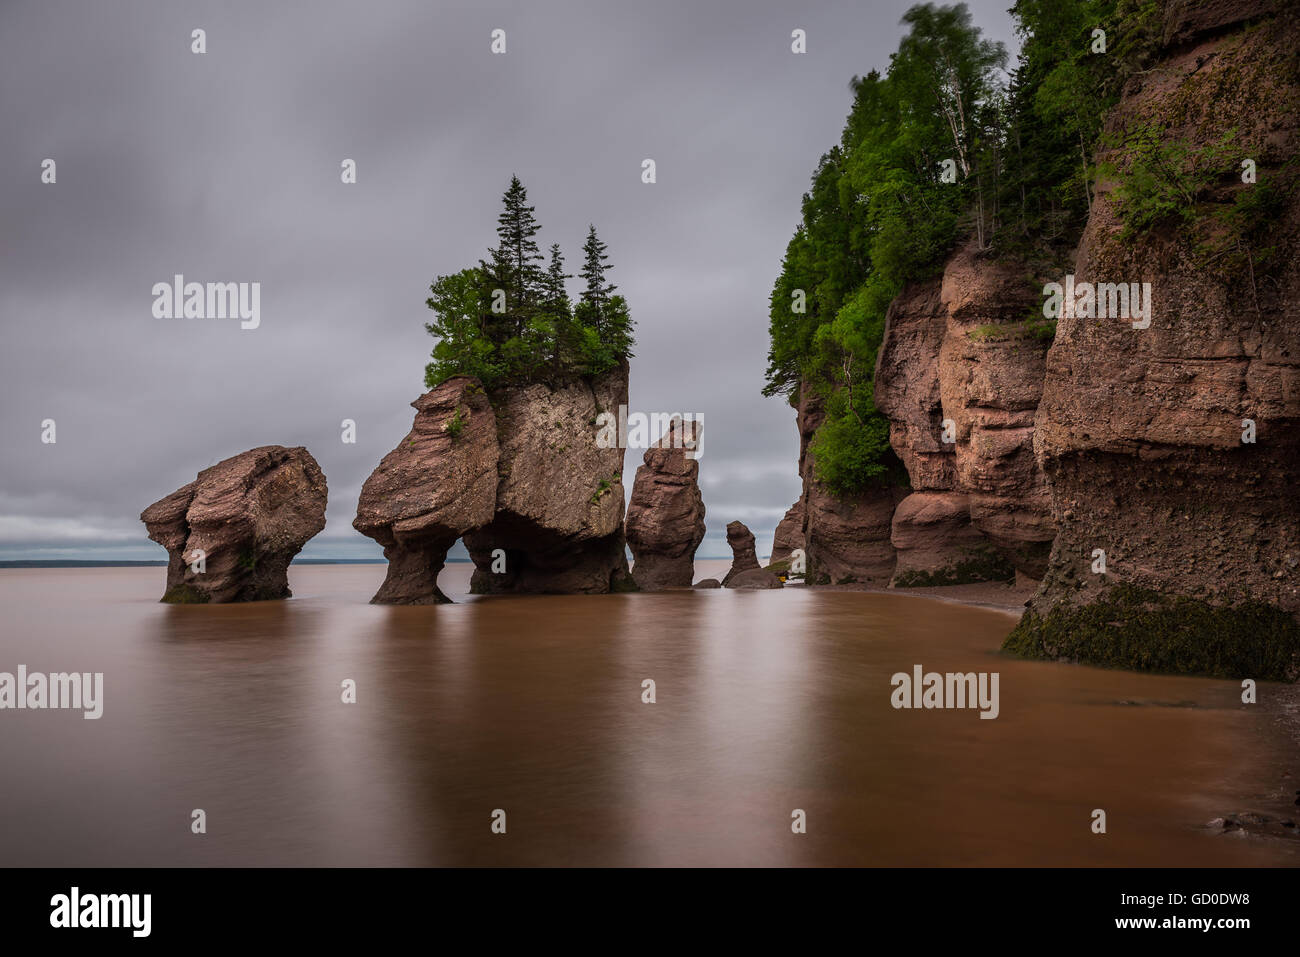 A long exposure of the Flowerpot Rocks, part of the Hopewell Rocks, in New Brunswick, Canada. - Stock Image